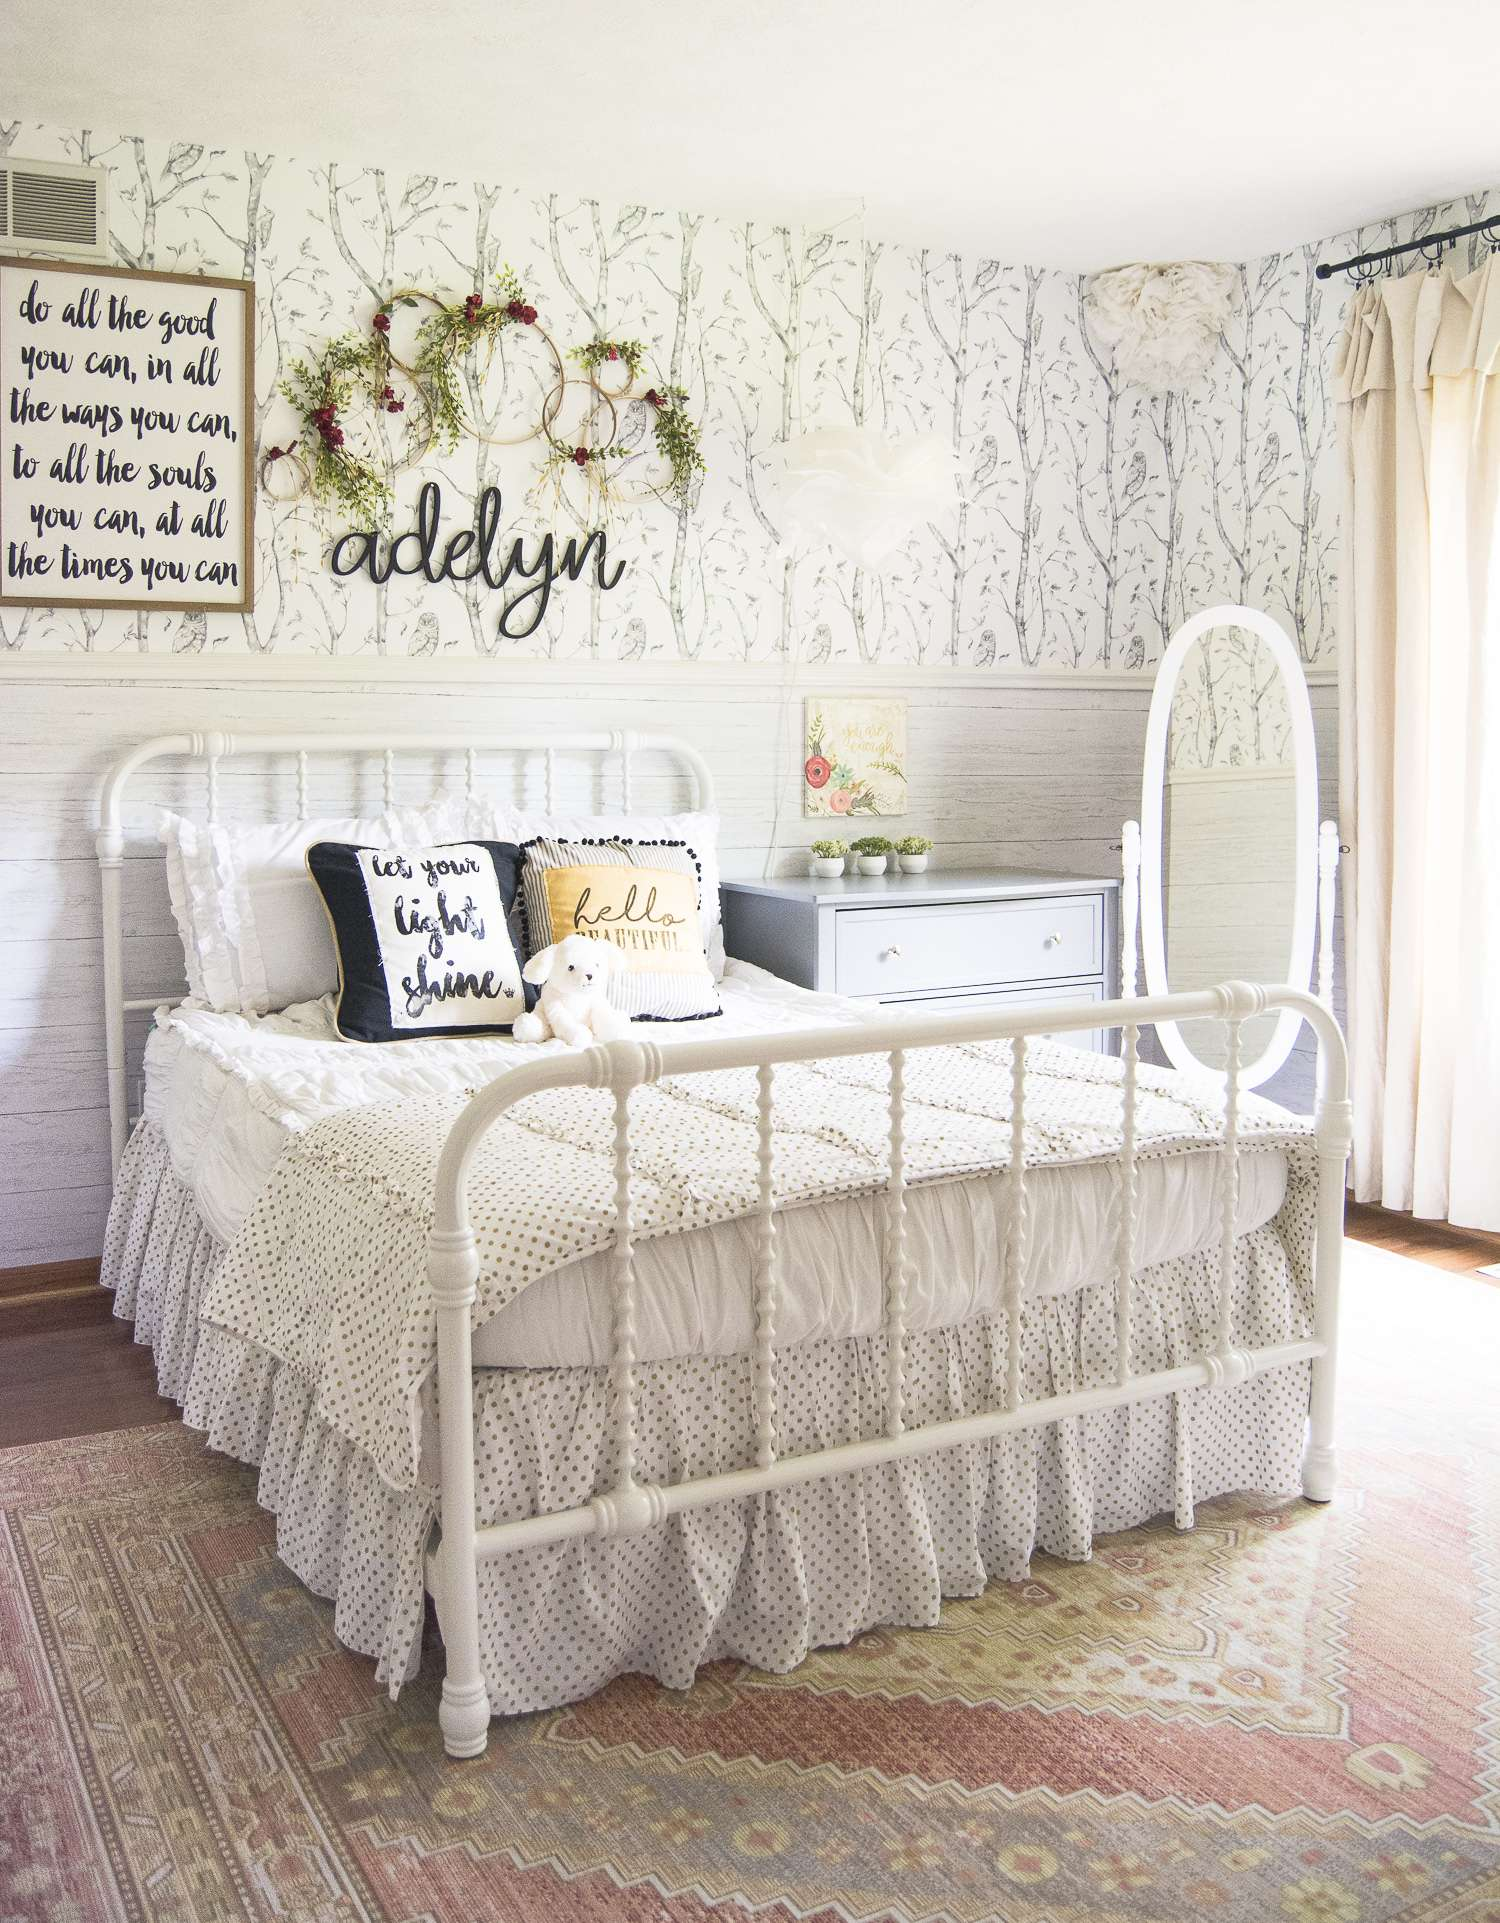 Are you looking for little girl's room inspiration? Here is my full home style guide with my best modern farmhouse decor sources. #fromhousetohaven #farmhouseinteriordesign #modernfarmhousestyle